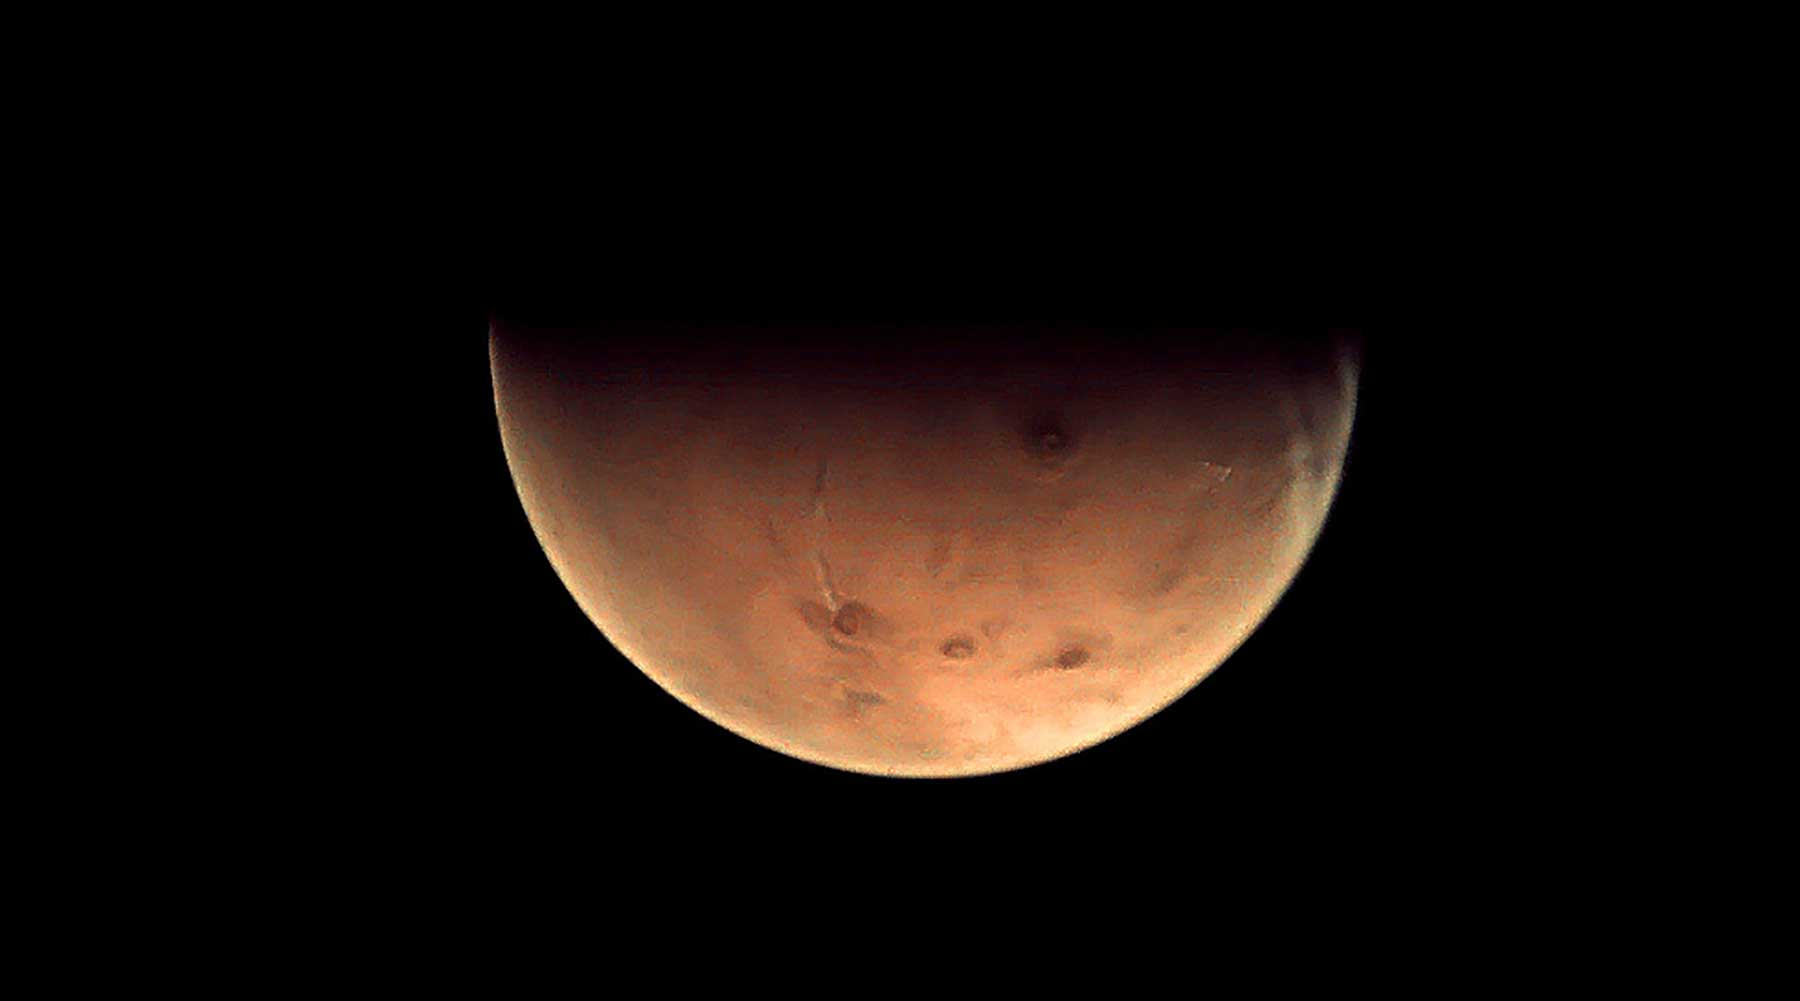 Mars in Vedic Astrology - Photo credit: ESA